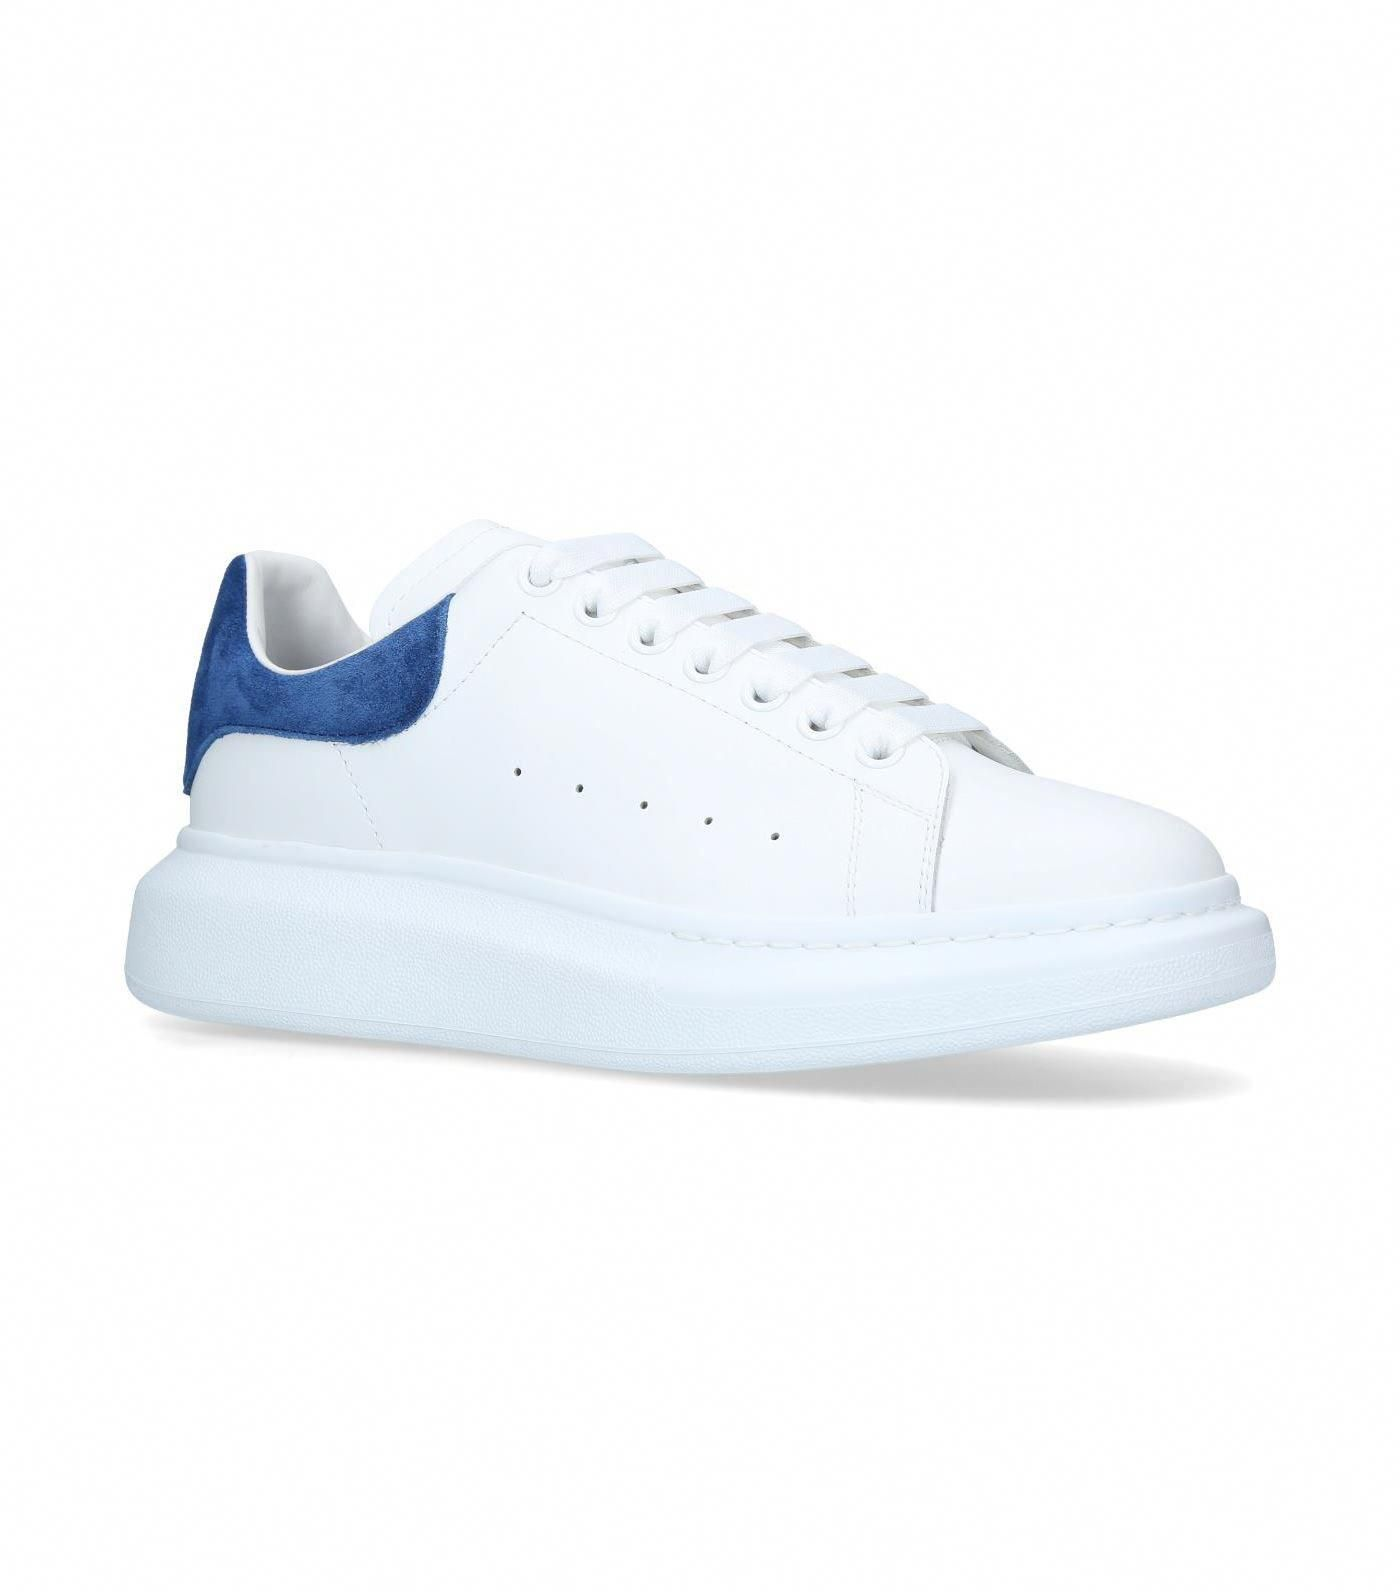 674f3cc70 ALEXANDER MCQUEEN LEATHER SHOW SNEAKERS.  alexandermcqueen  shoes   MensFashionSneakers